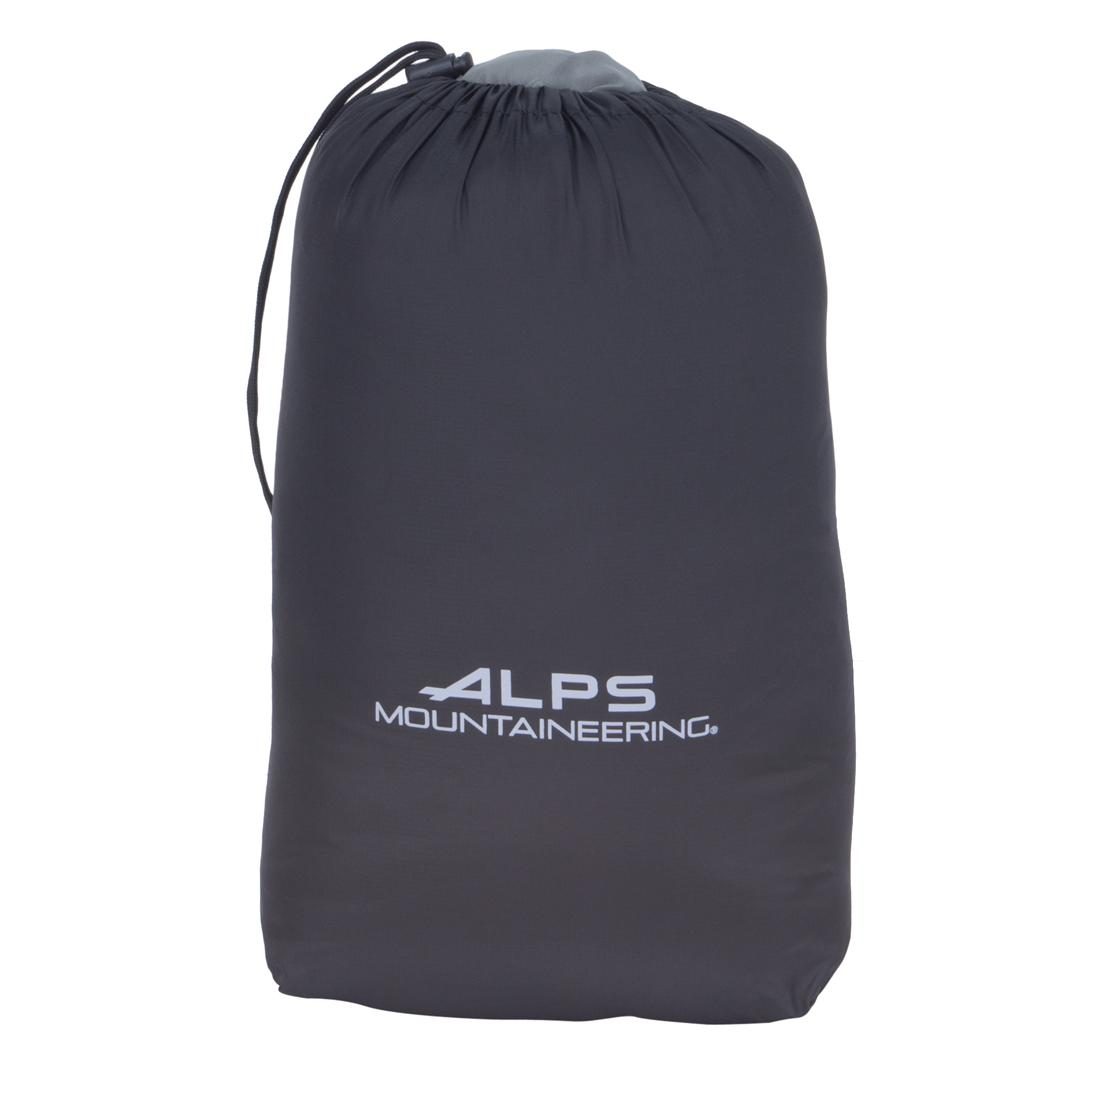 Backpack Pillow Amazoncom Alps Mountaineering Microfiber Camp Pillow Sports